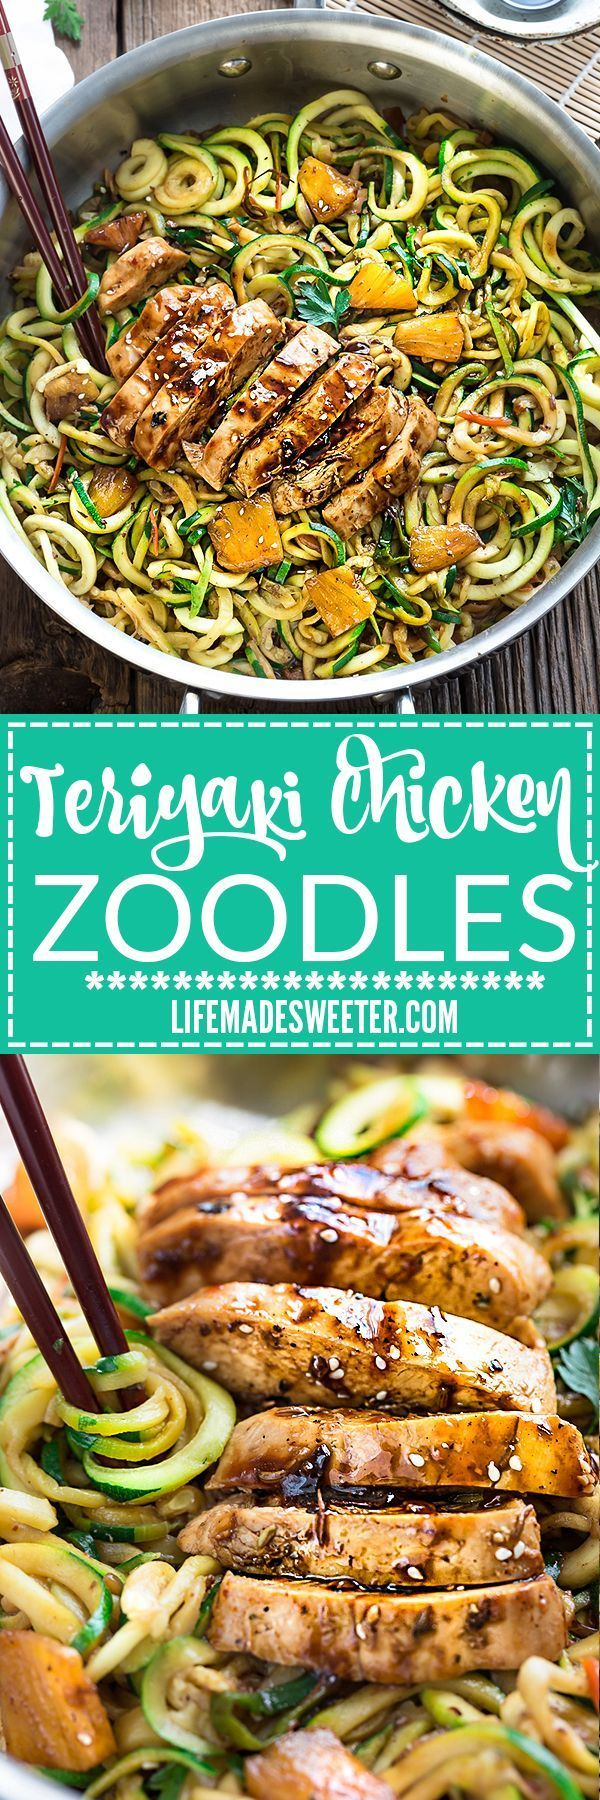 One Pot Teriyaki Chicken Zoodles {Zucchini Noodles} make the perfect easy gluten-free (with paleo option) lower carb weeknight meal! Best of all so much better and healthier than takeout - only 30 minutes to make with just one pan to clean!